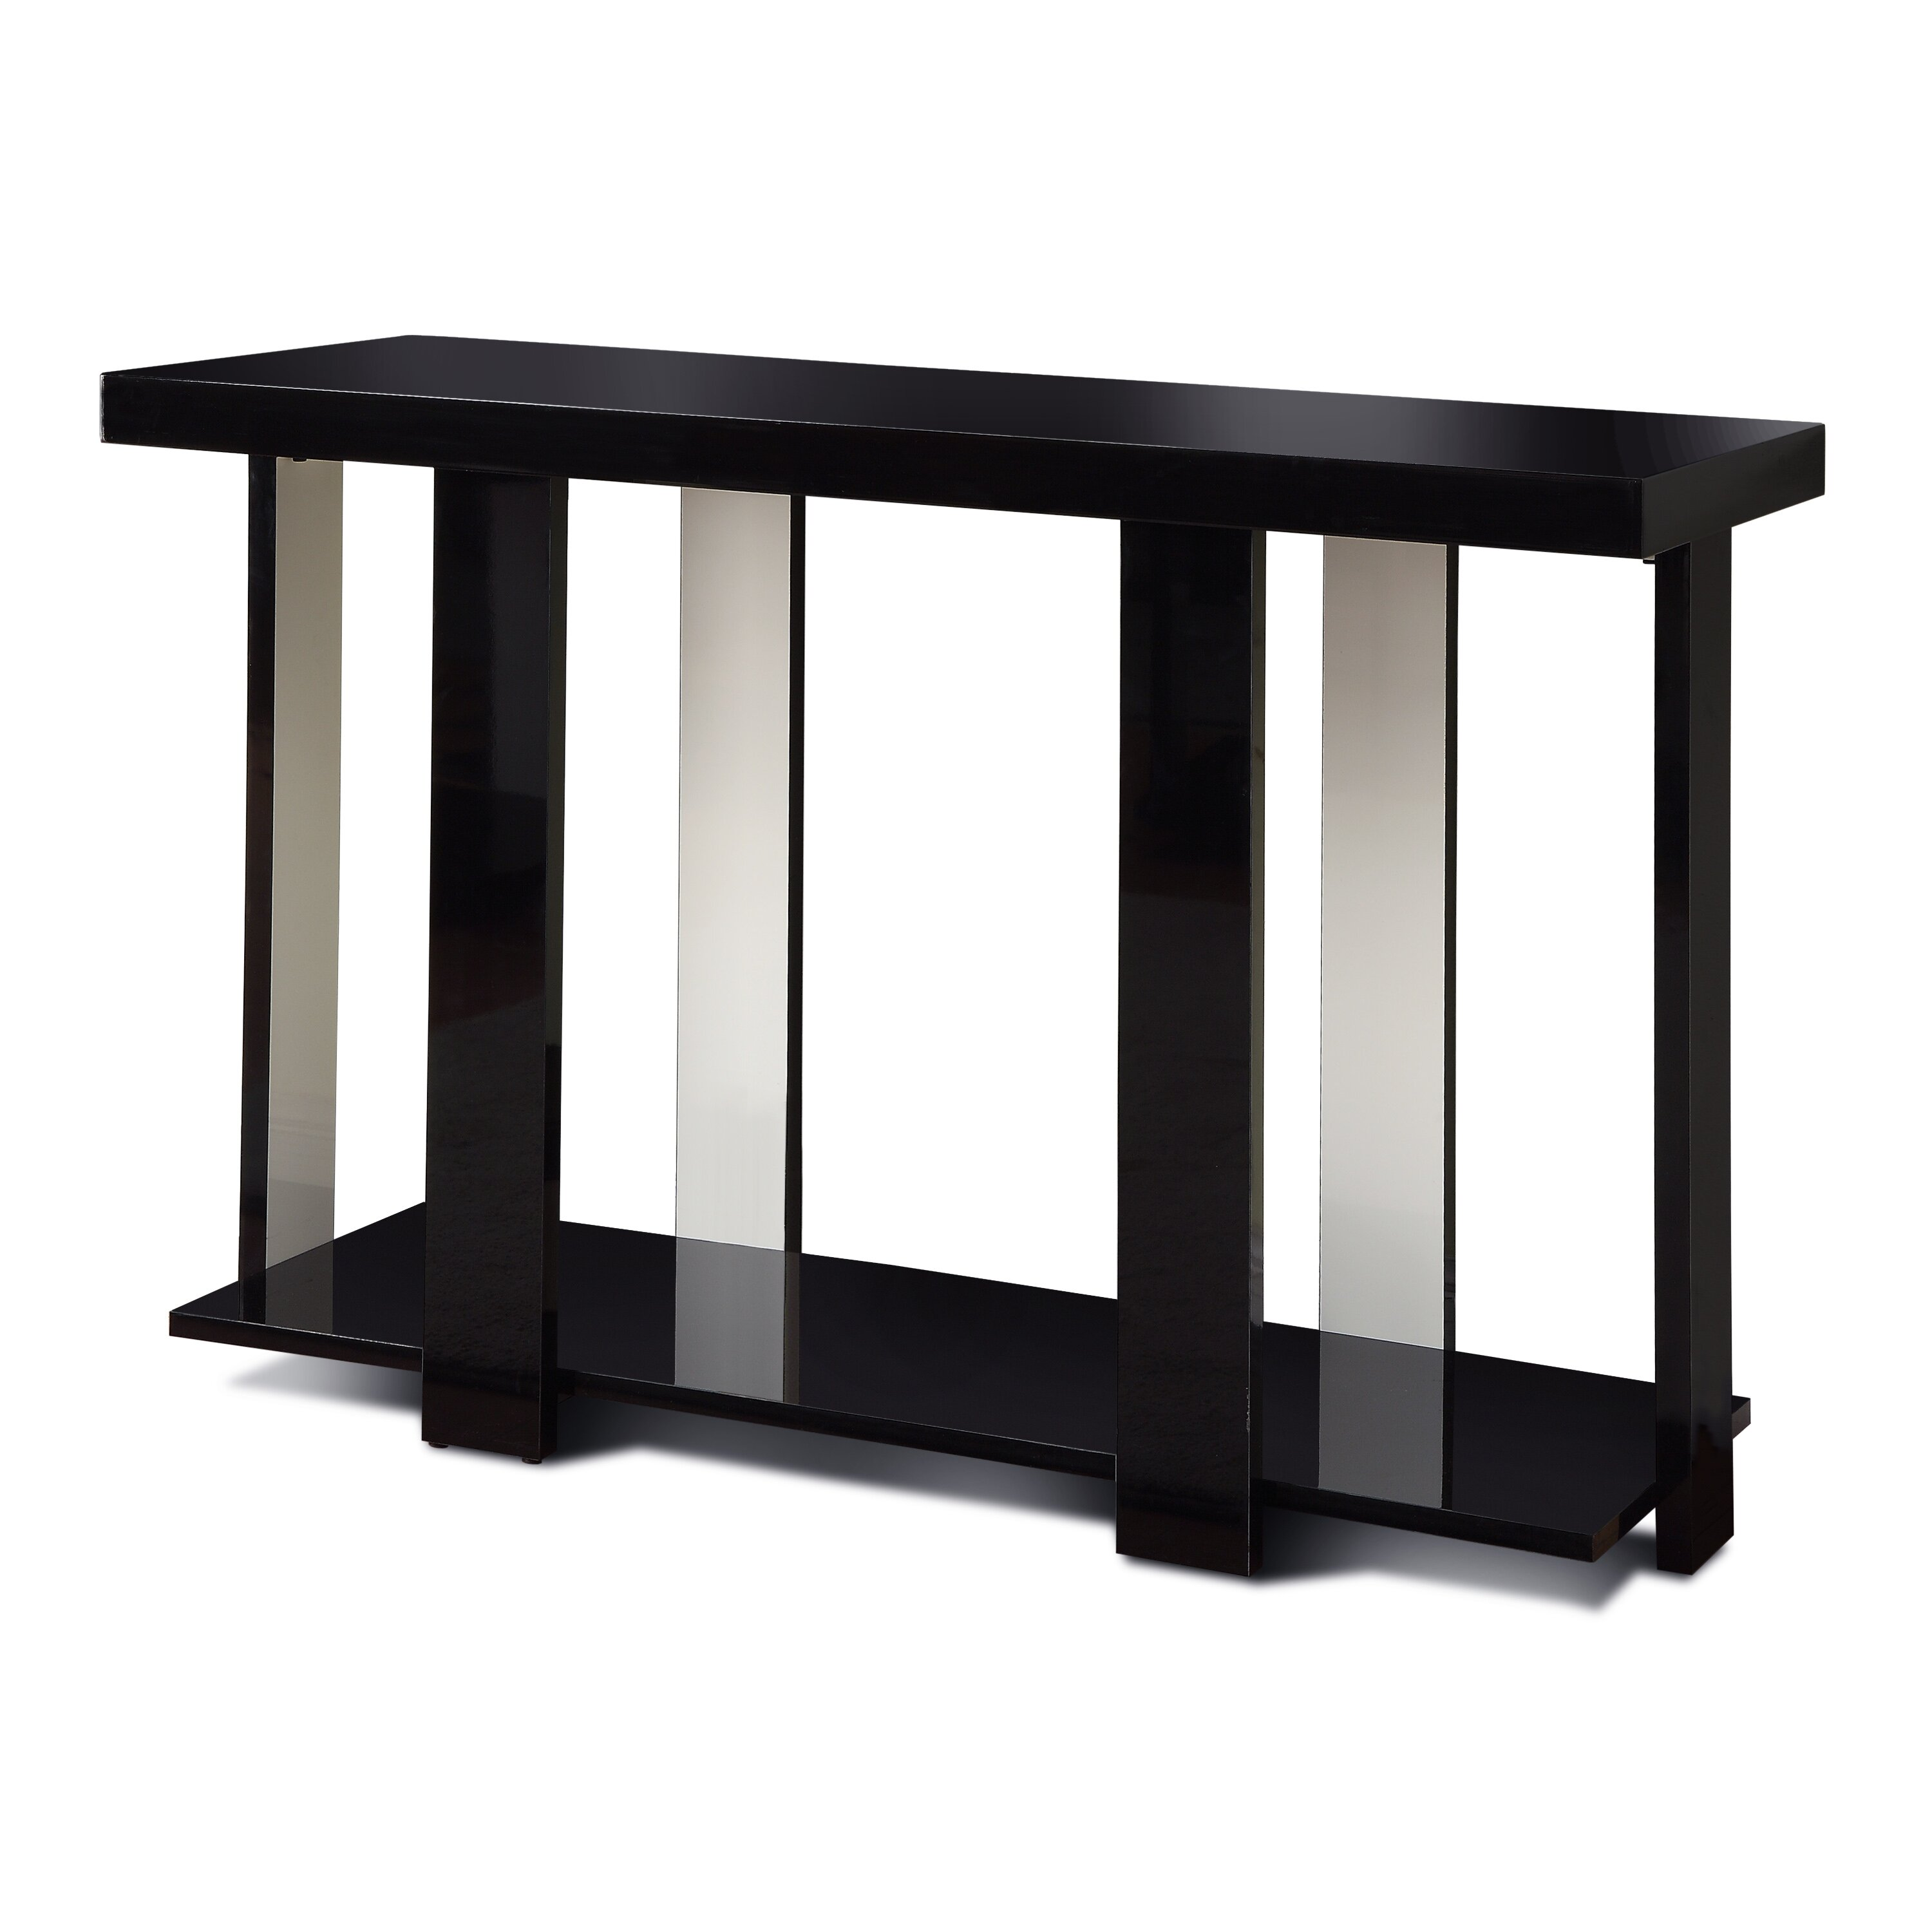 Hokku Designs Eran Console Table Reviews